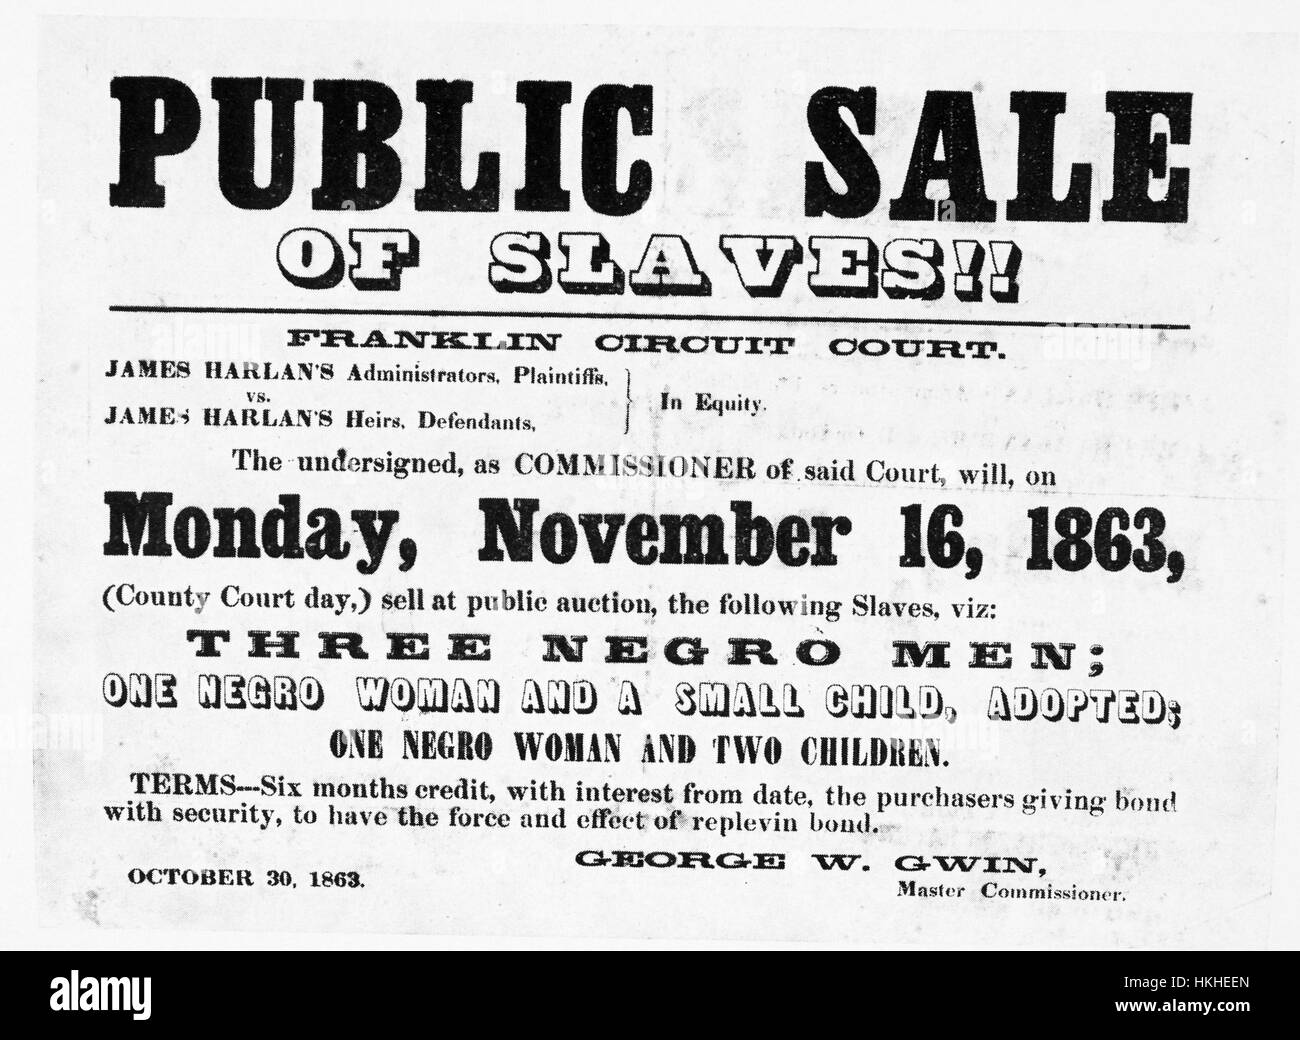 A poster advertising a slave sale, it is being held by a man named George W Gwin who is listed as Master Commissioner, - Stock Image